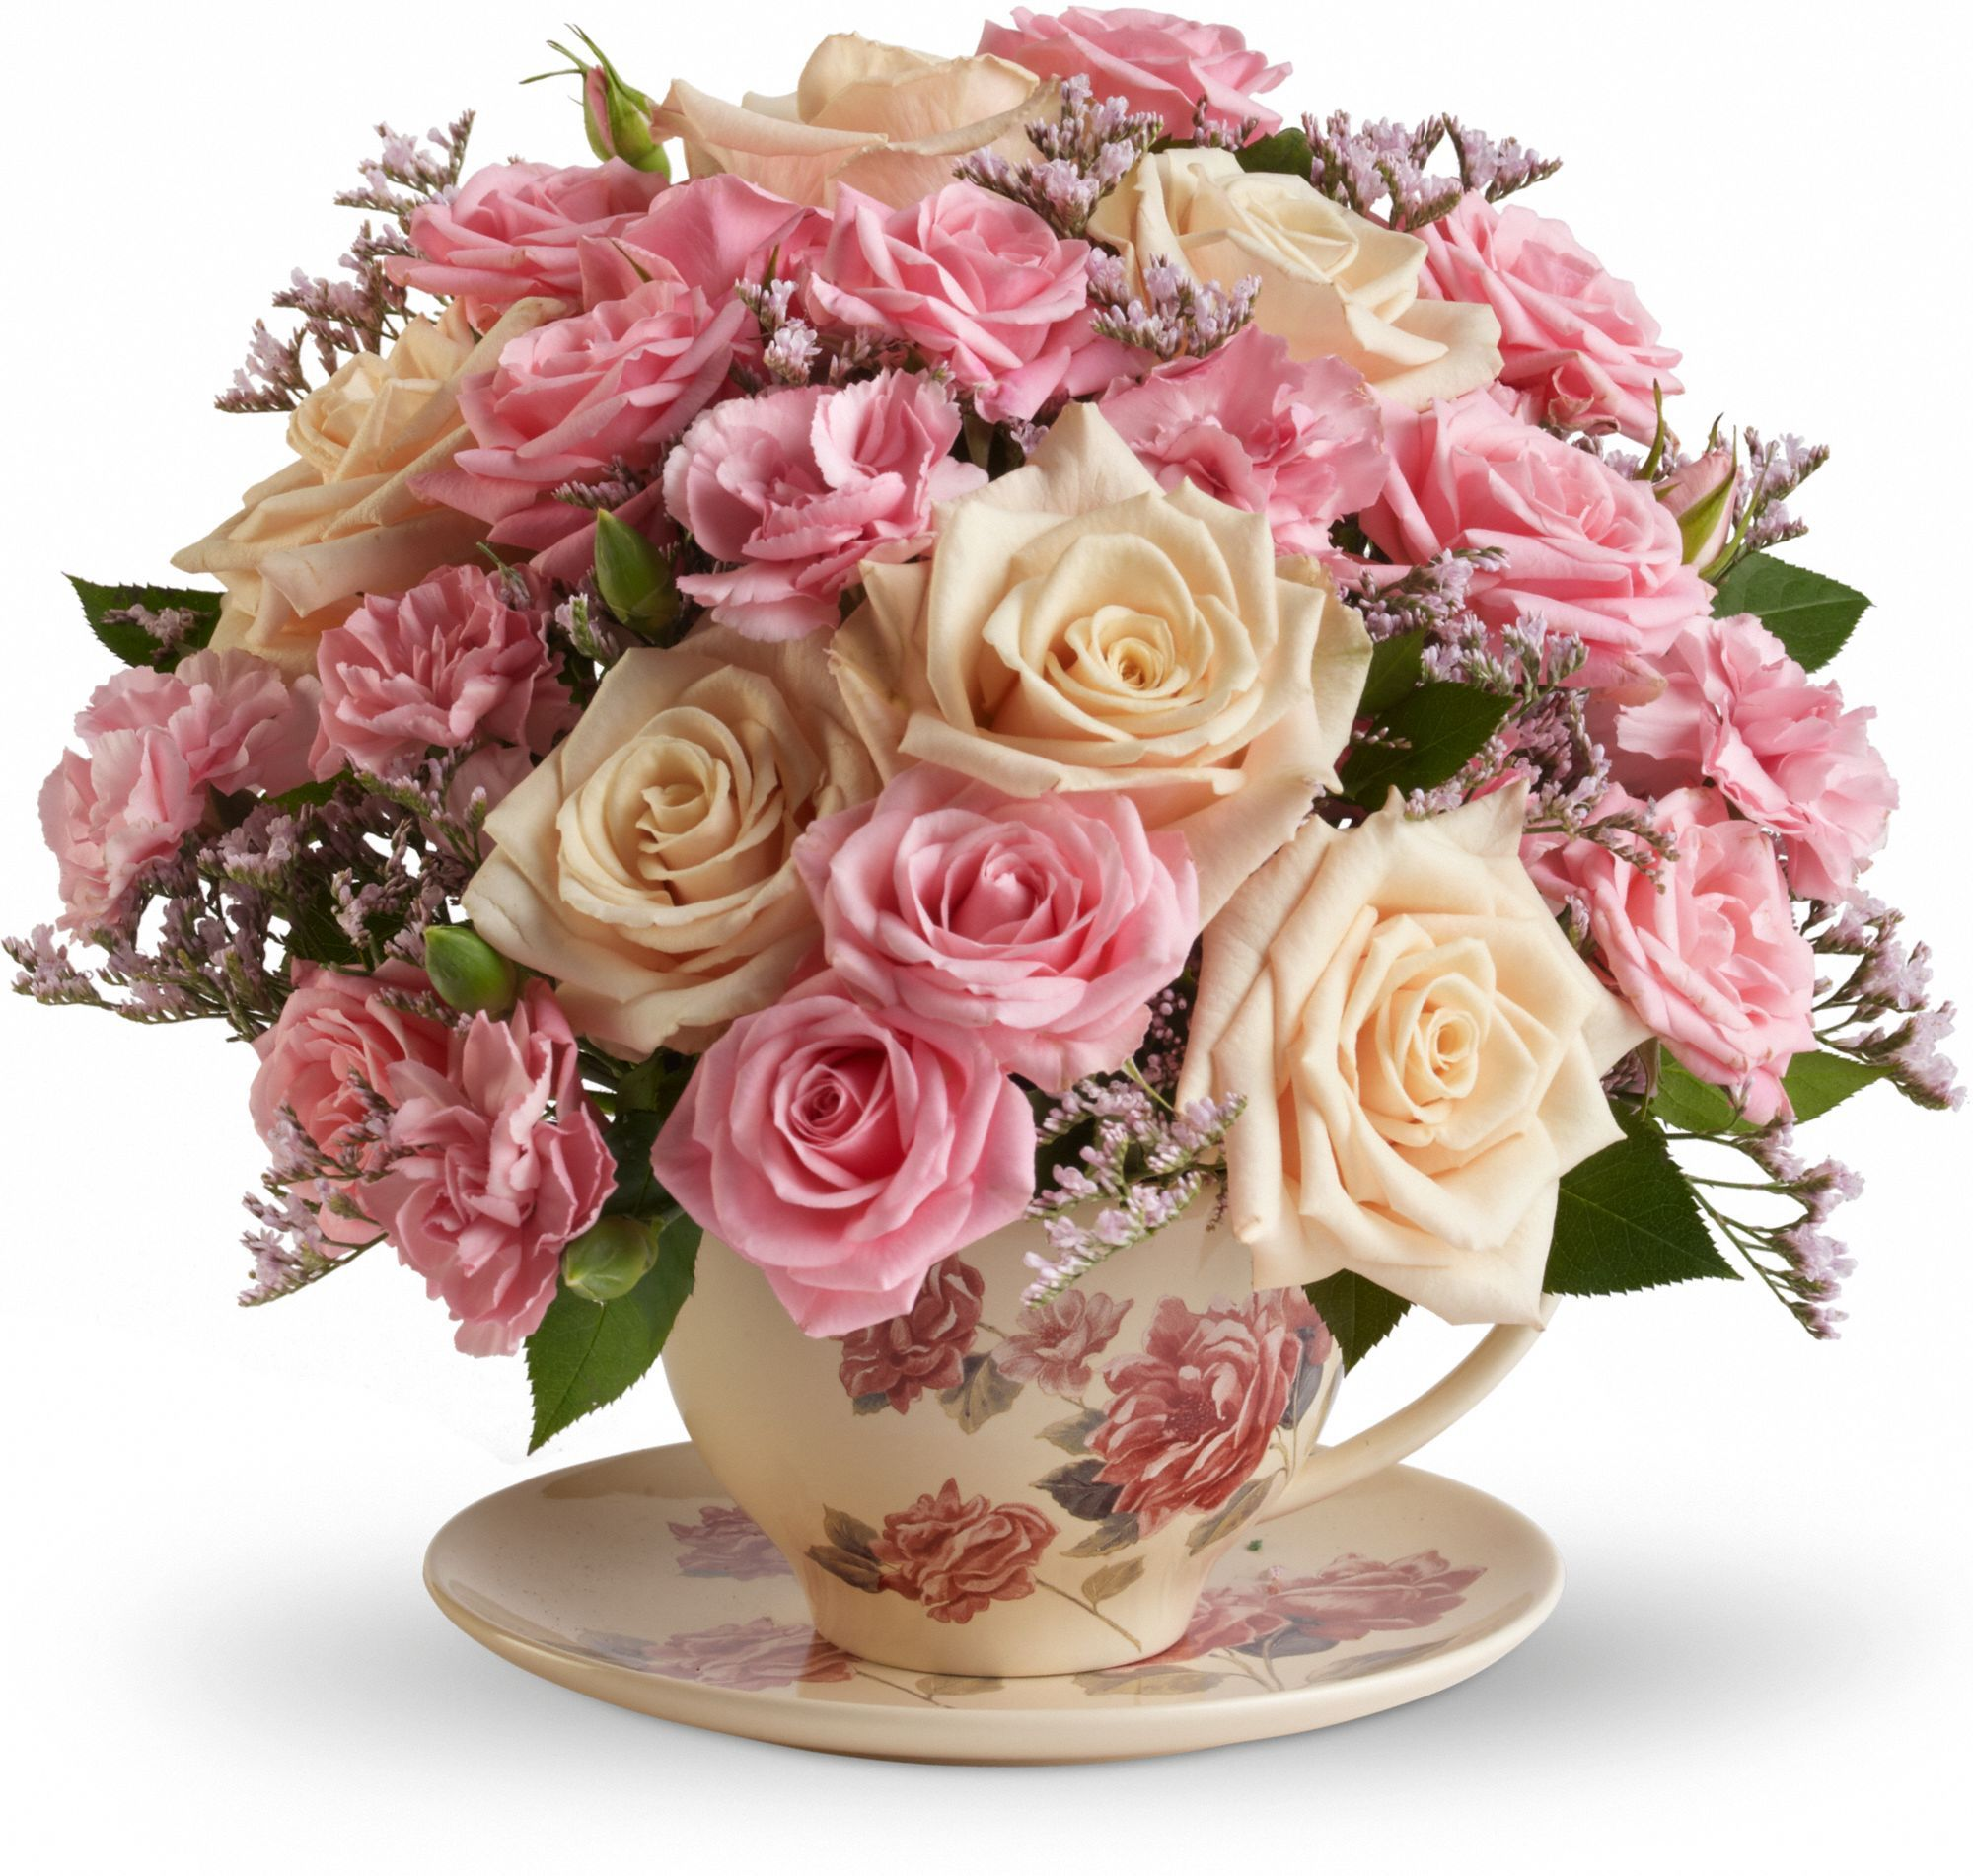 Teleflora's Victorian Teacup Bouquet. Sending these to